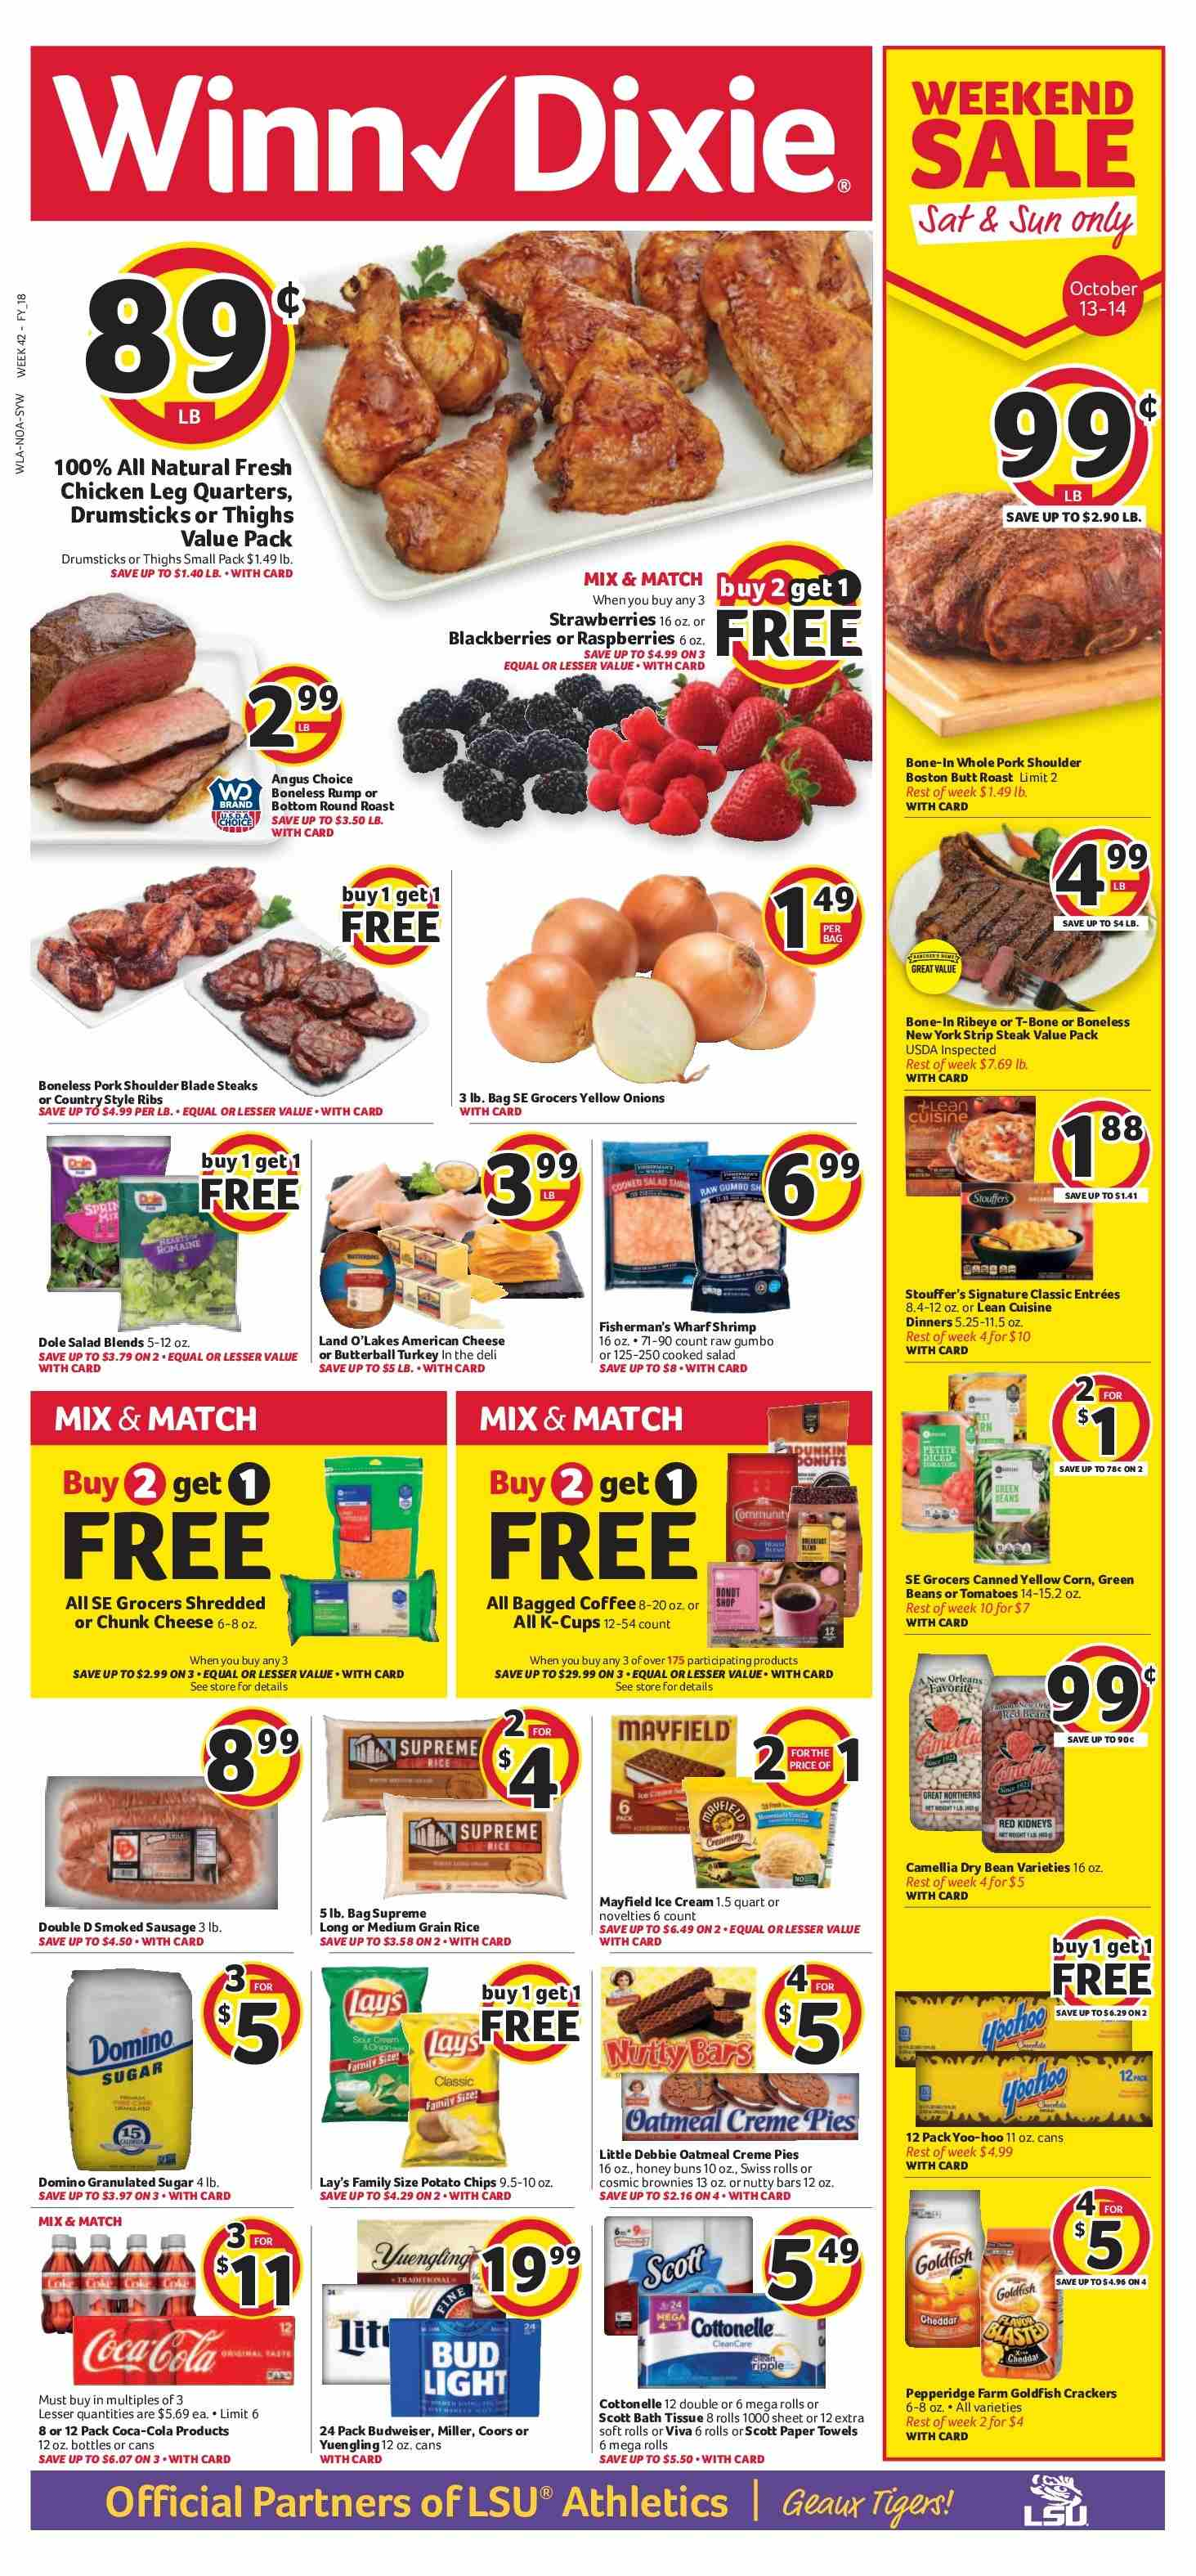 Winn Dixie Flyer - 10.10.2018 - 10.16.2018 - Sales products - Budweiser, Bud Light, Coors, corn, green beans, tomatoes, yellow onions, onion, Dole, blackberries, raspberries, strawberries, rolls, brownie, Butterball, turkey, chicken, steak, pork meat, pork shoulder, sausage, american cheese, cheese, ice cream, beans, cracker, crackers, potato chips, chips, Lay's, oatmeal, honey, Coca-Cola, bath tissue, Cottonelle, paper towel. Page 1.